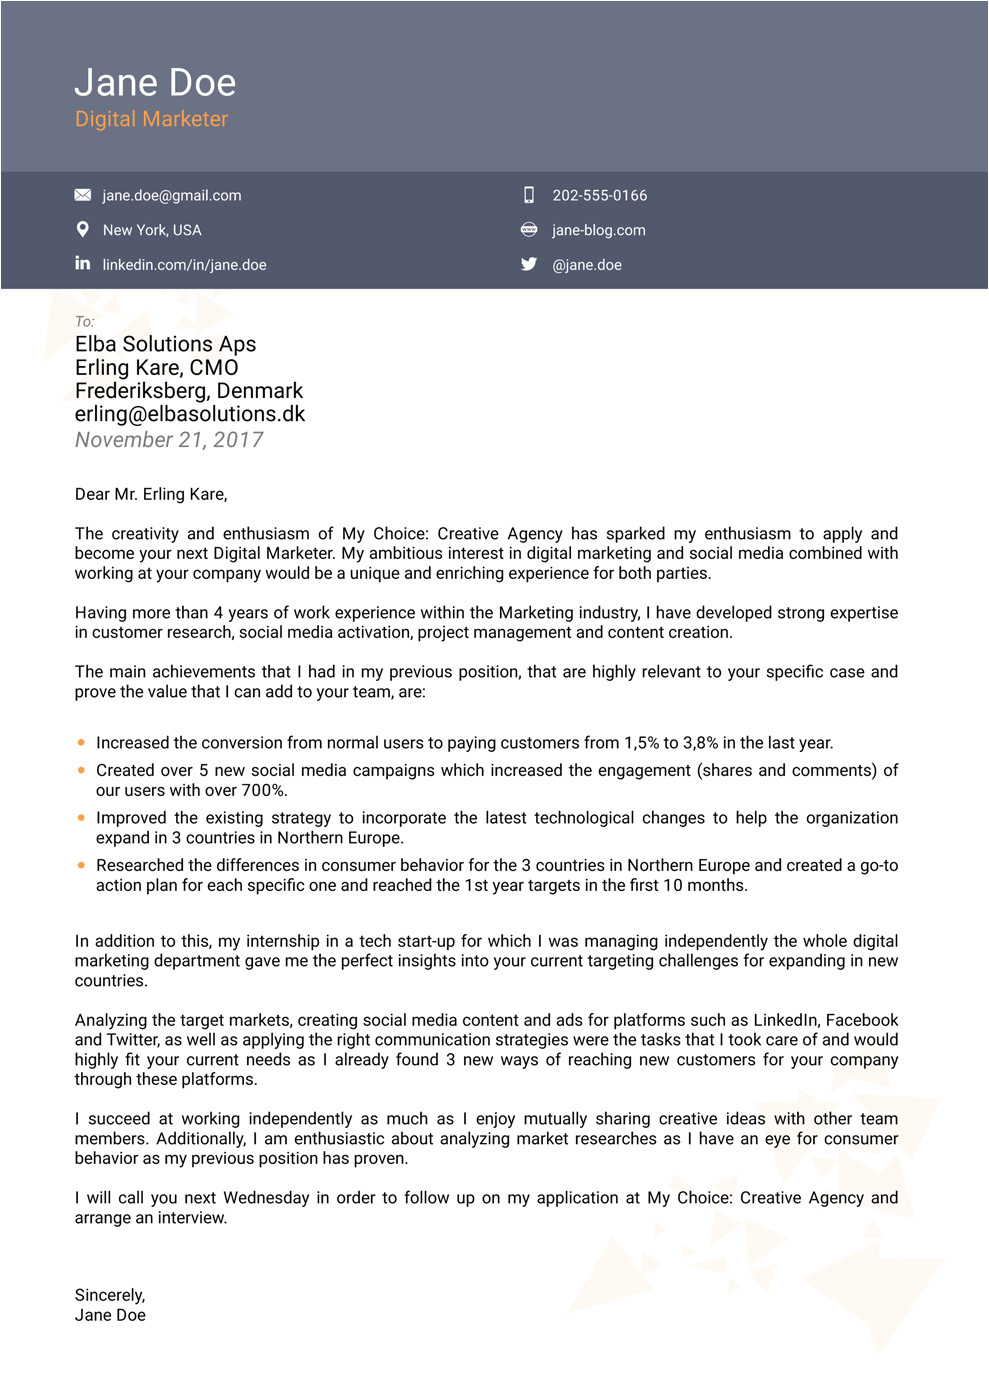 Cover Letter Tamplate top 8 Cover Letter Templates Use Land Your Dream Job now